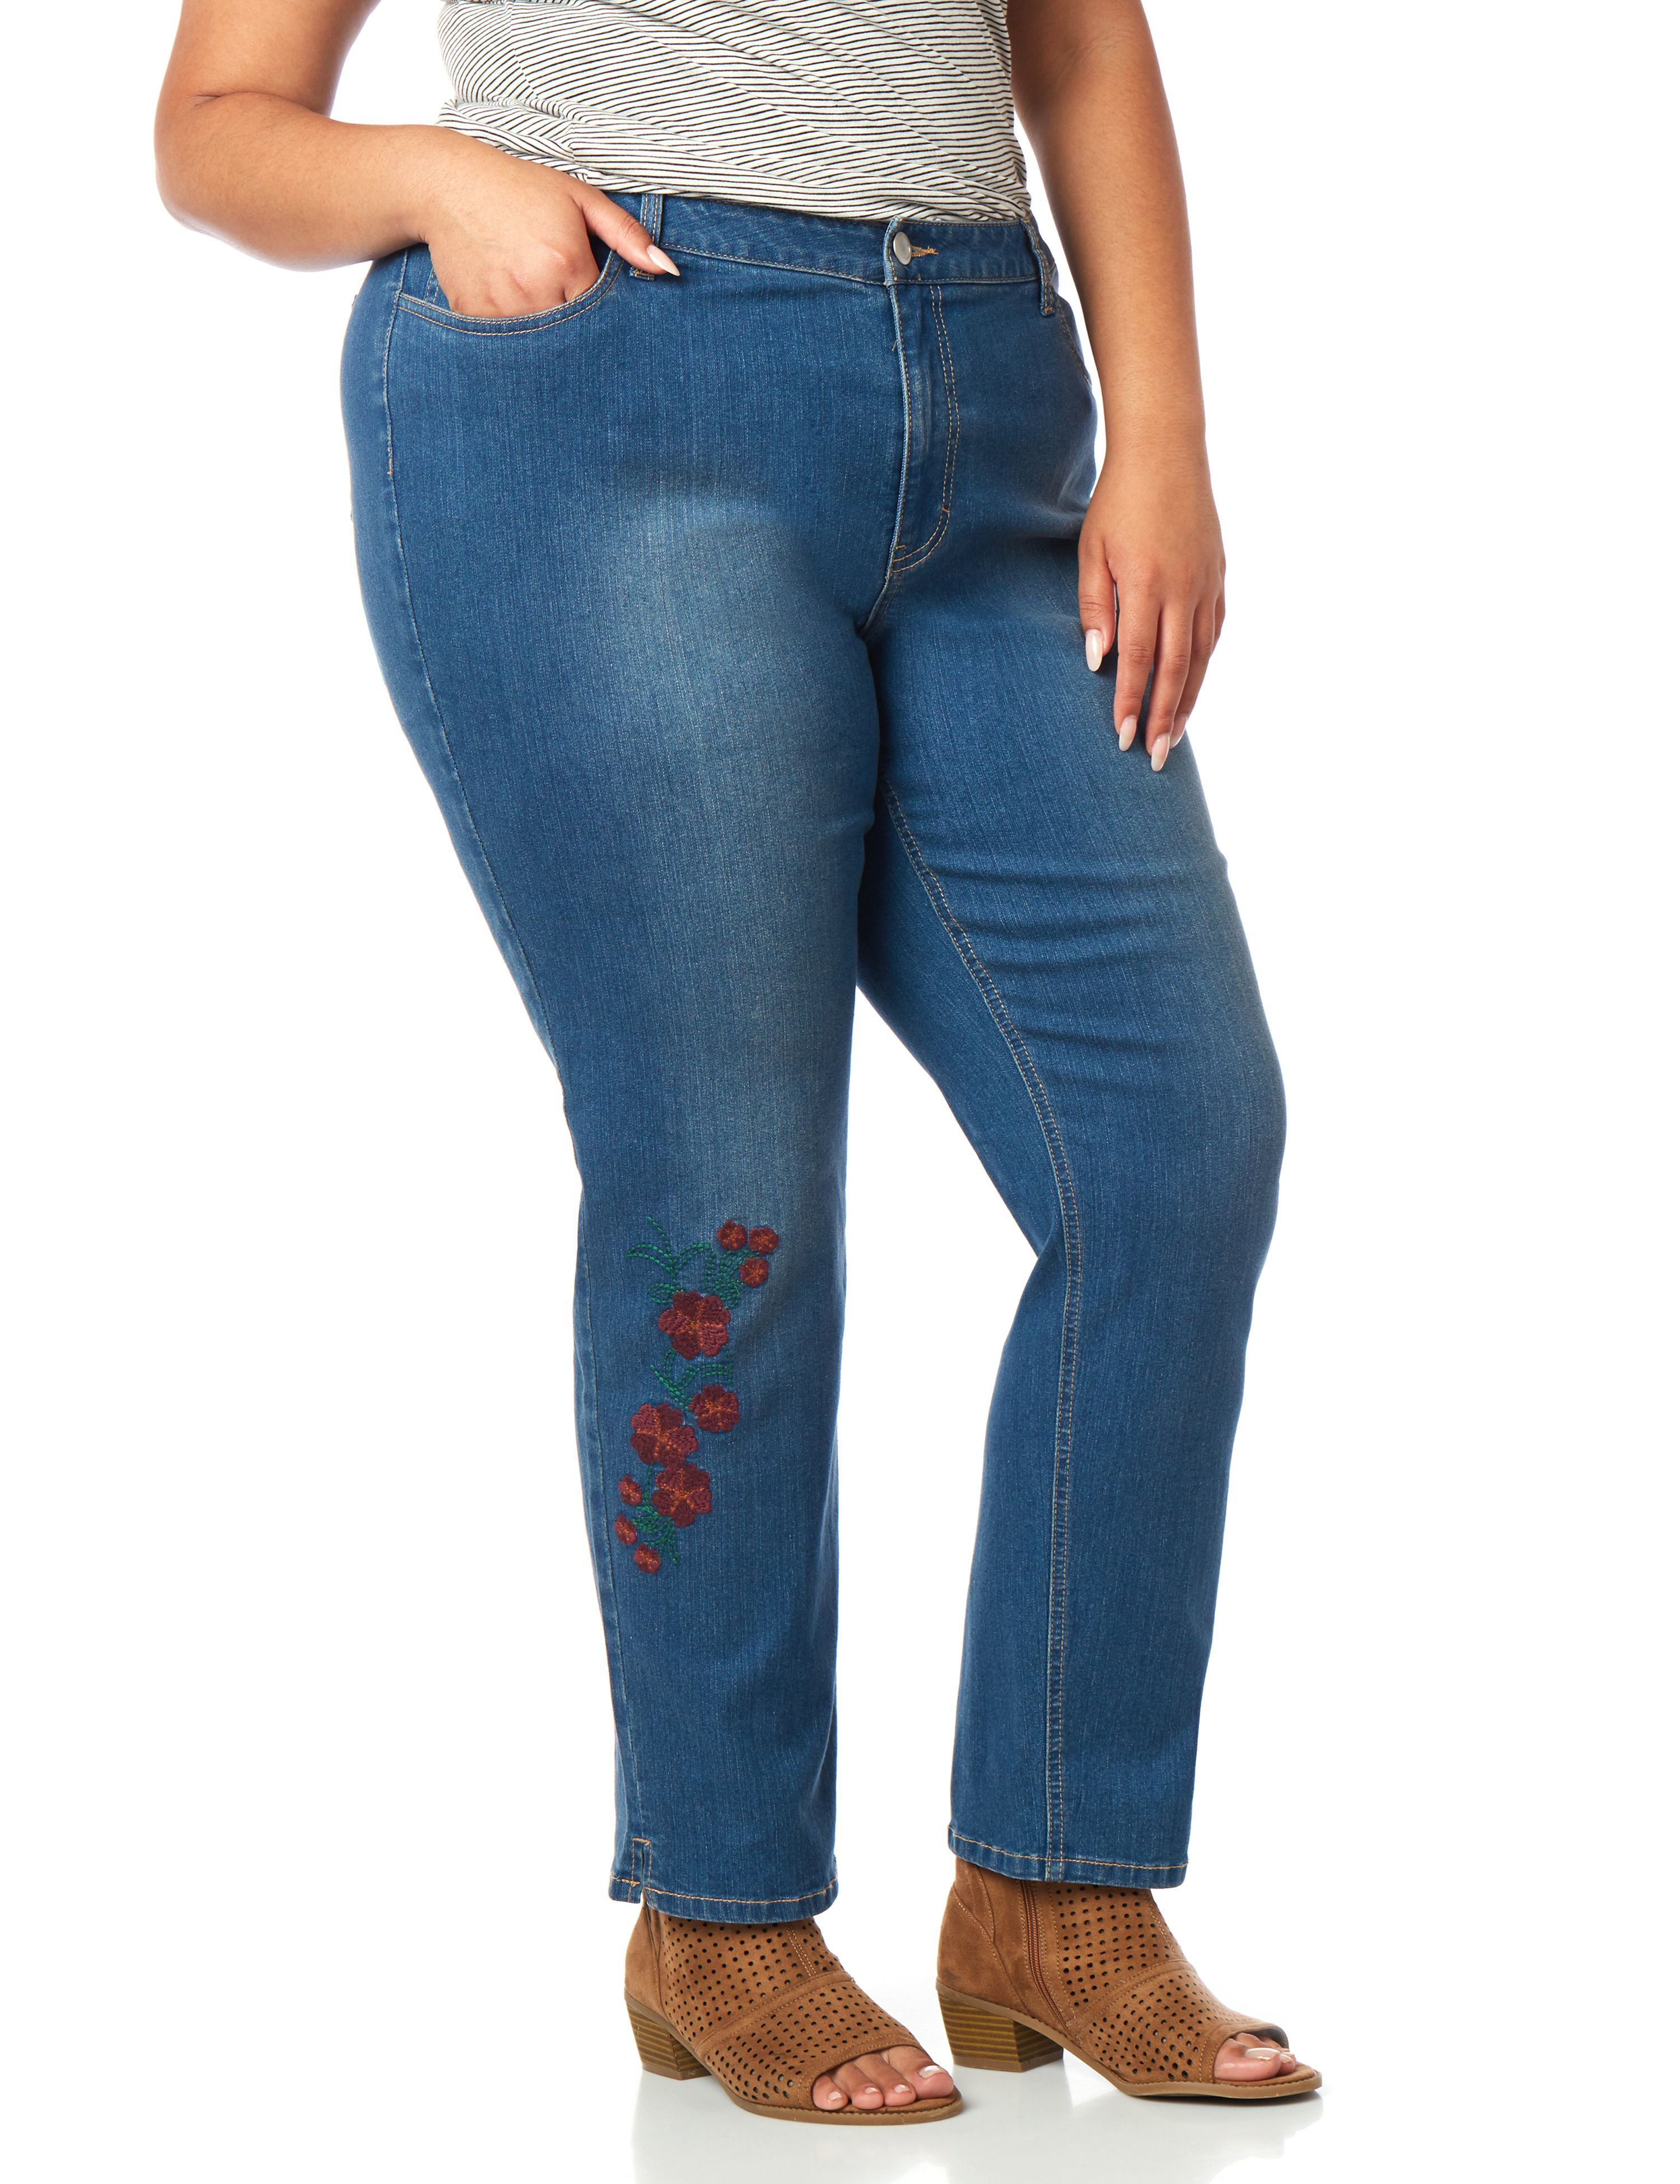 Floral Ankle Jean 1084764 Floral Embroidered Denim An MP-300084027